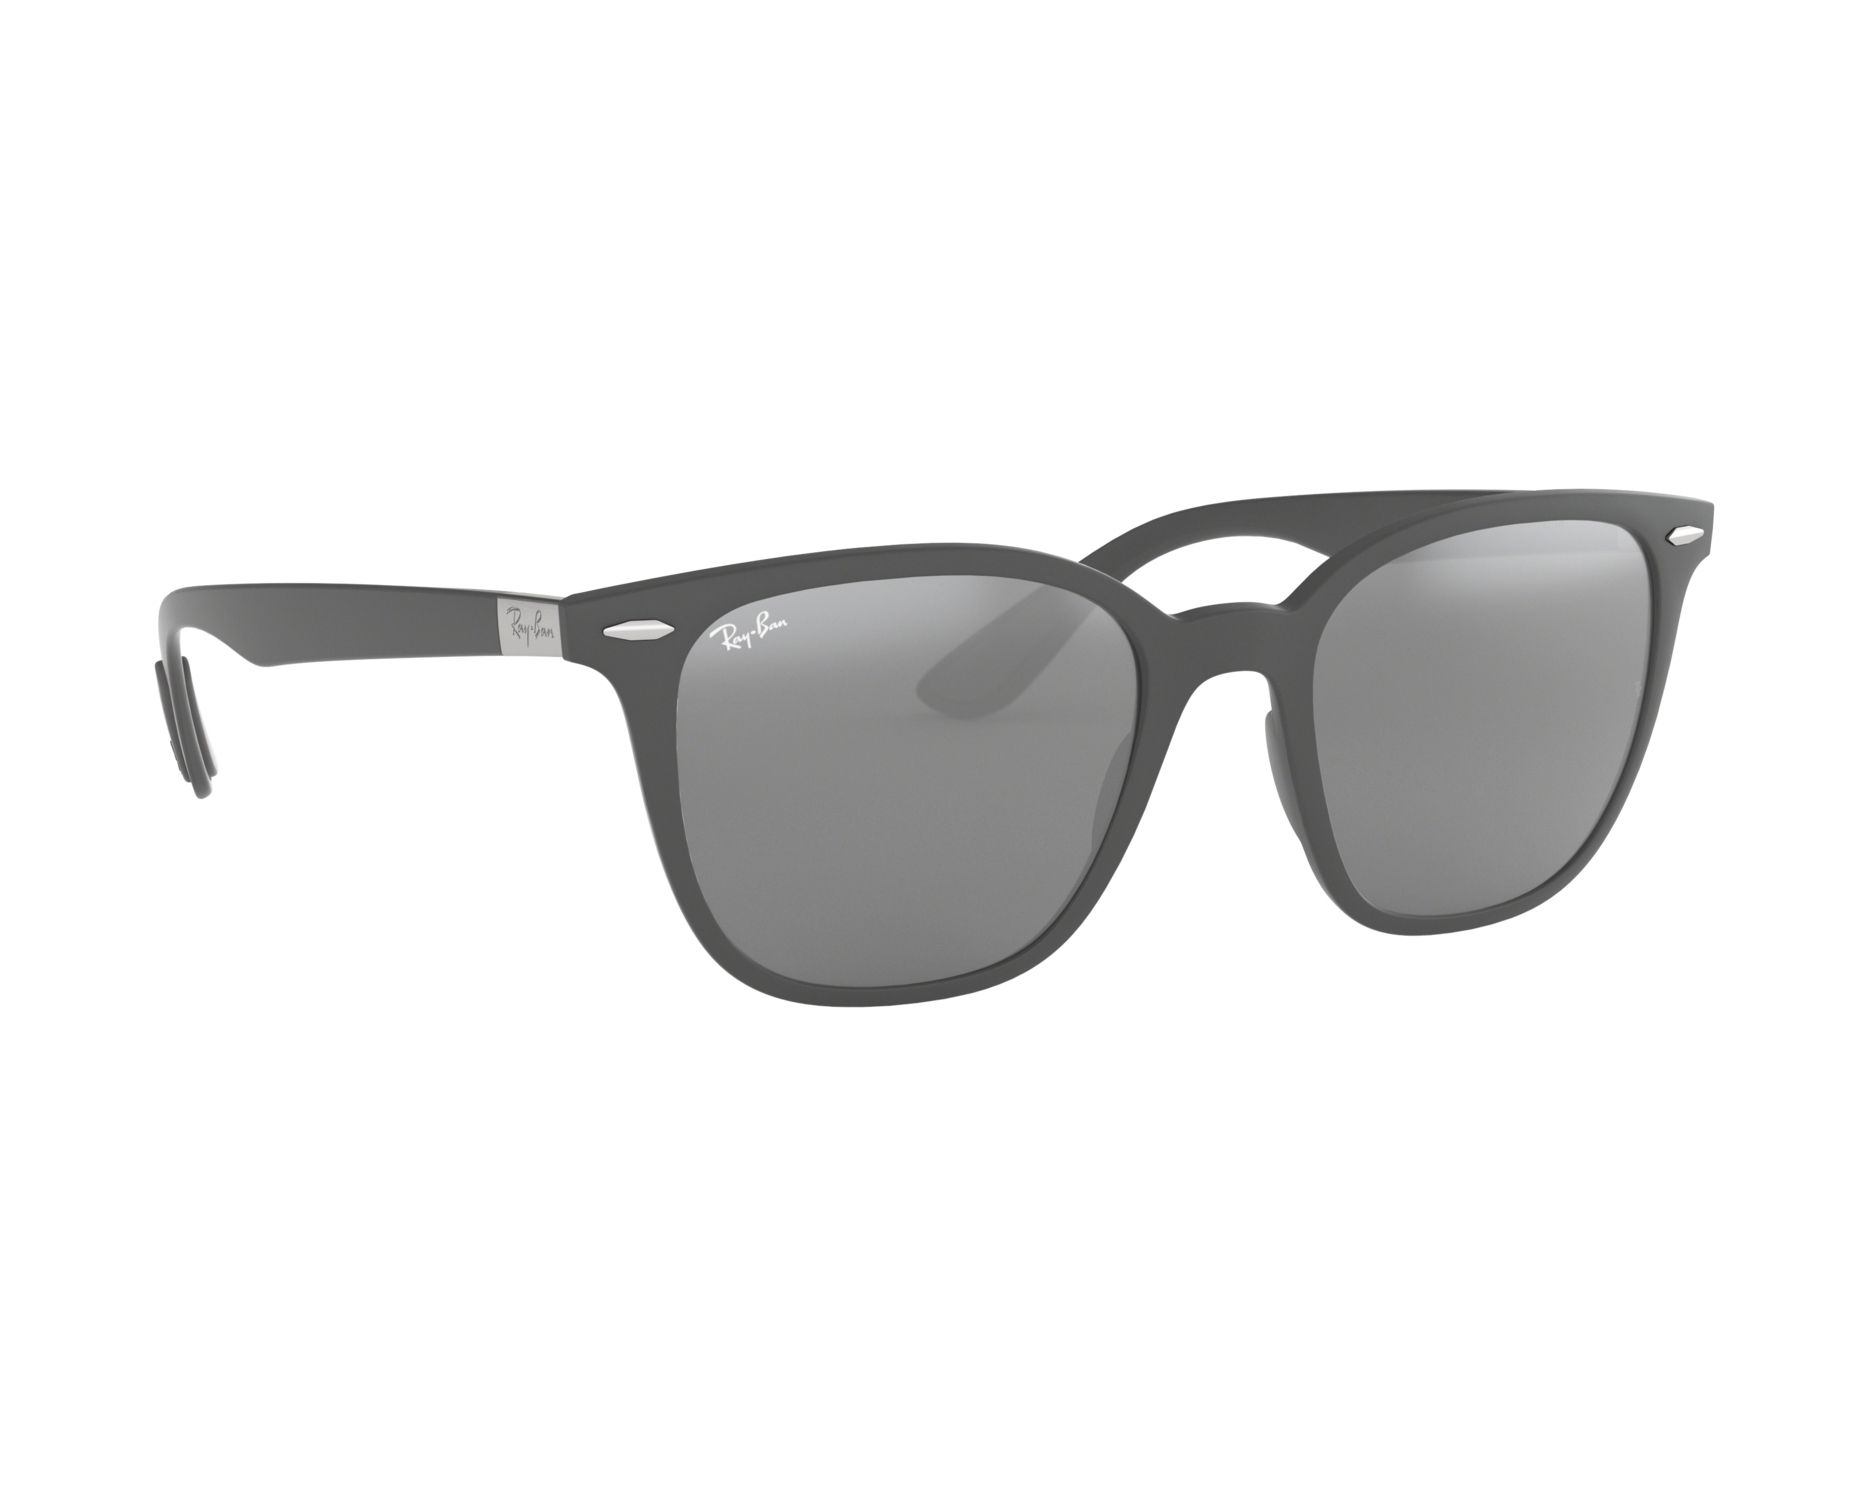 45b24dcc9f Sunglasses Ray-Ban RB-4297 633288 51-19 Grey 360 degree view 12